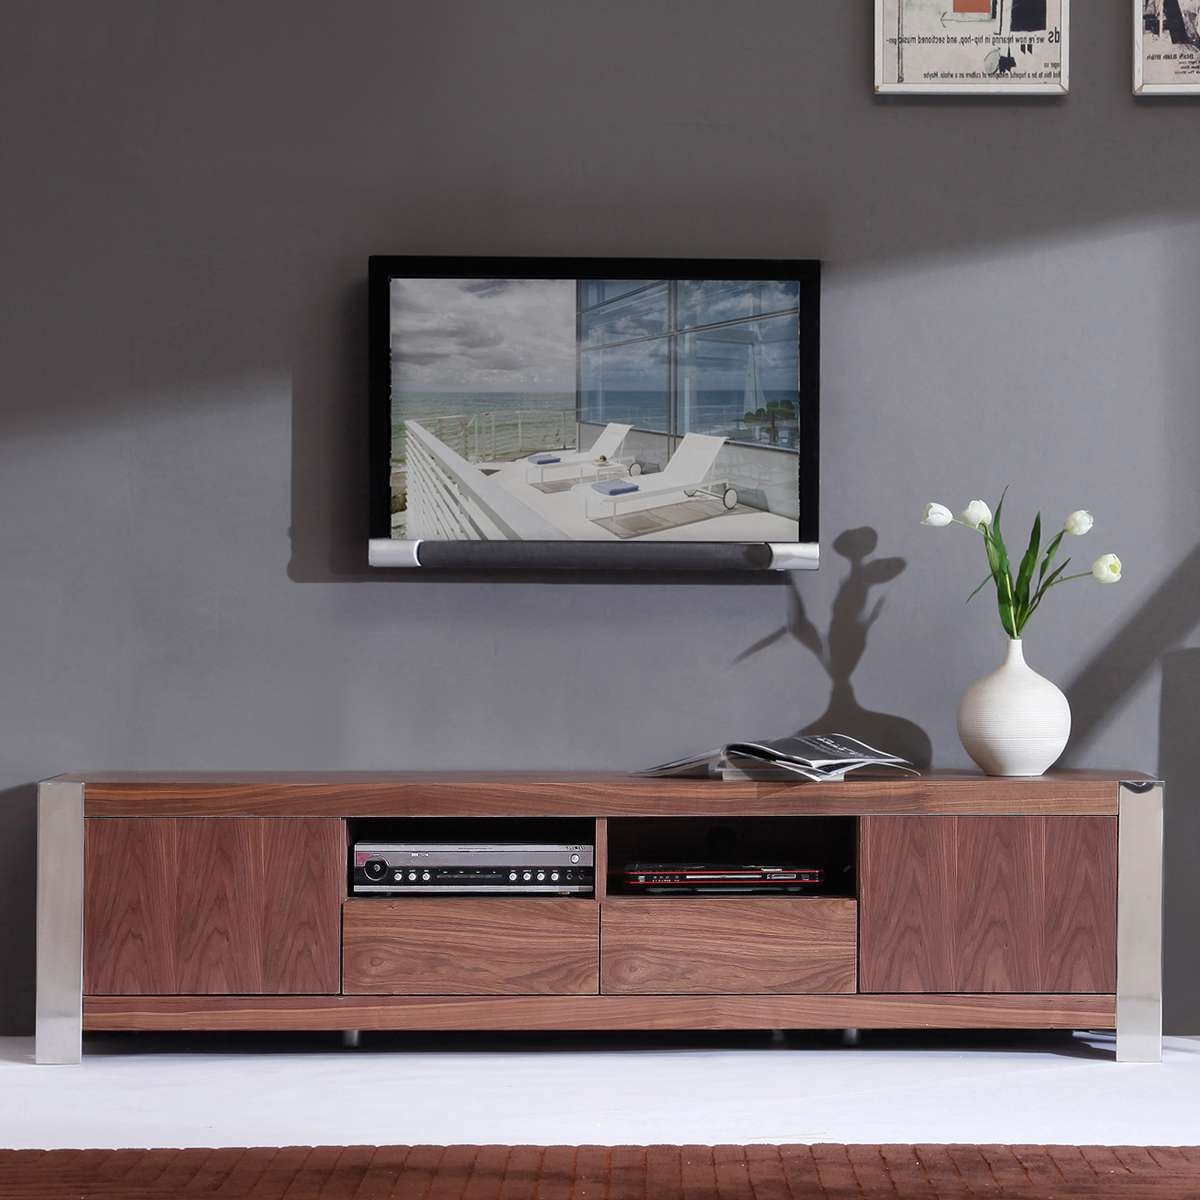 B Modern Minimalist Design Contemporary Tv Stands & Furniture At With Regard To B Modern Tv Stands (View 14 of 15)